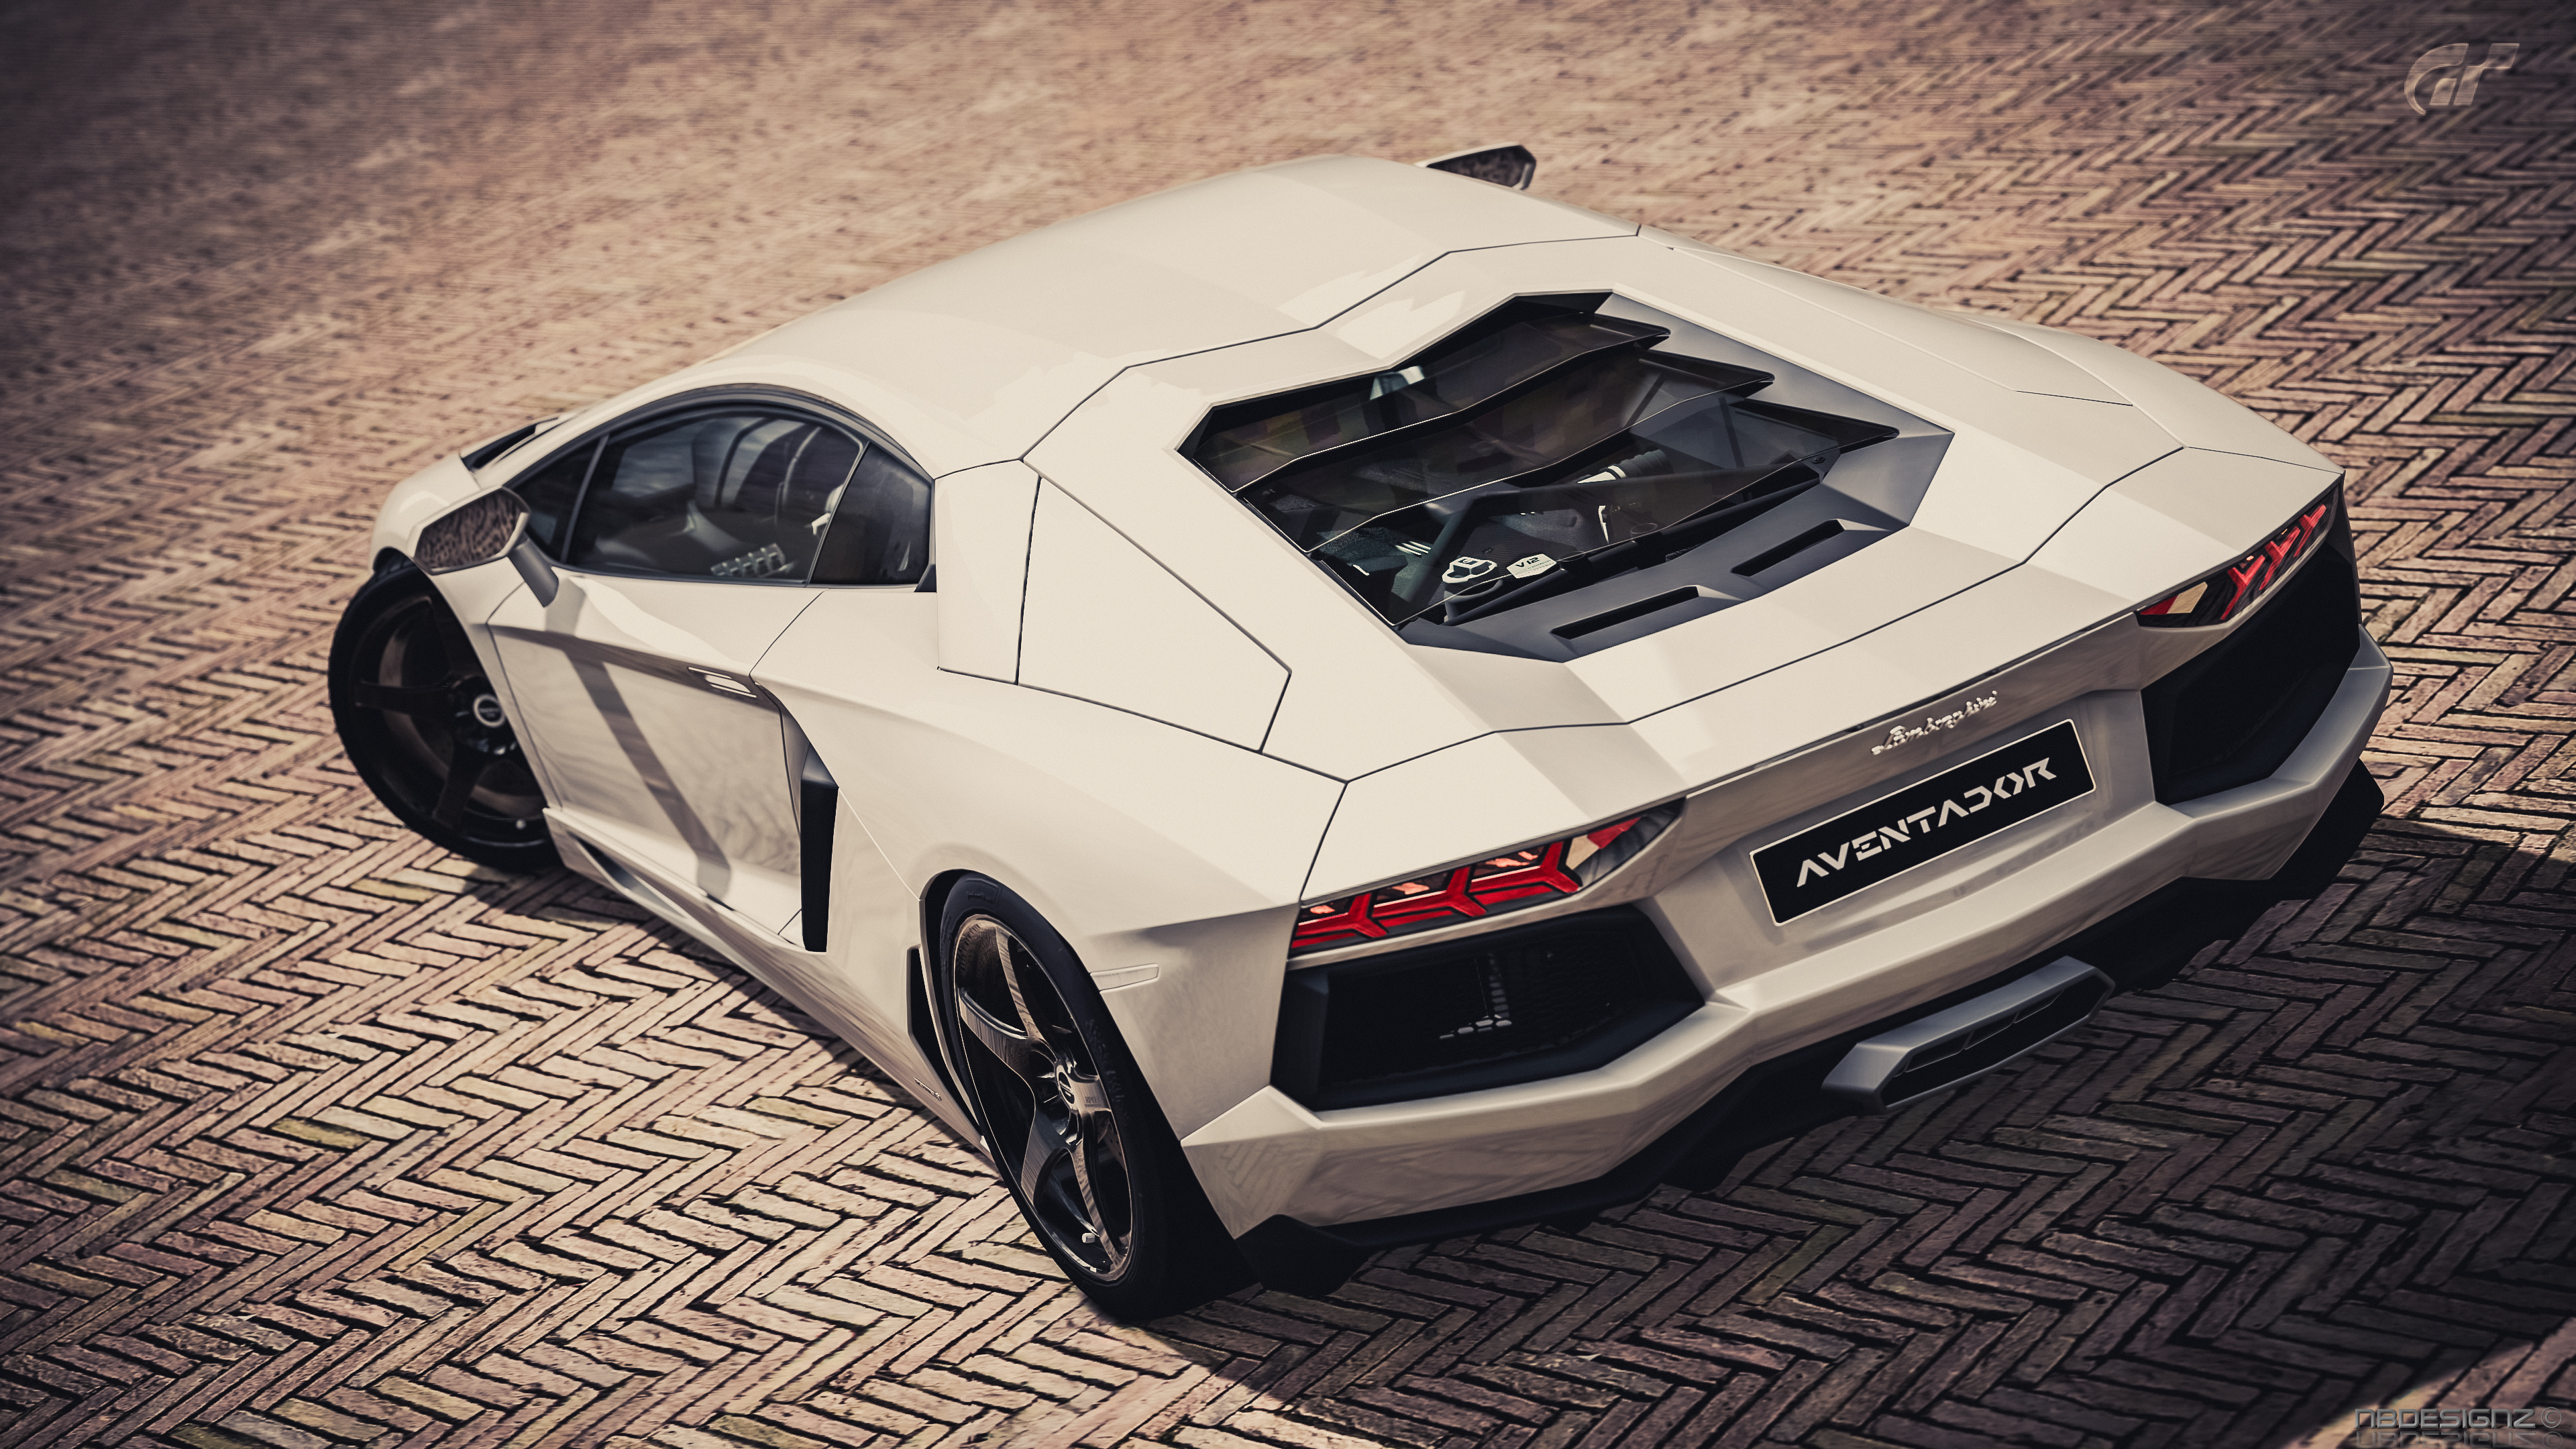 Lamborghini Aventador pictures on HD wallpapersOnly model Aventador 3840x2160